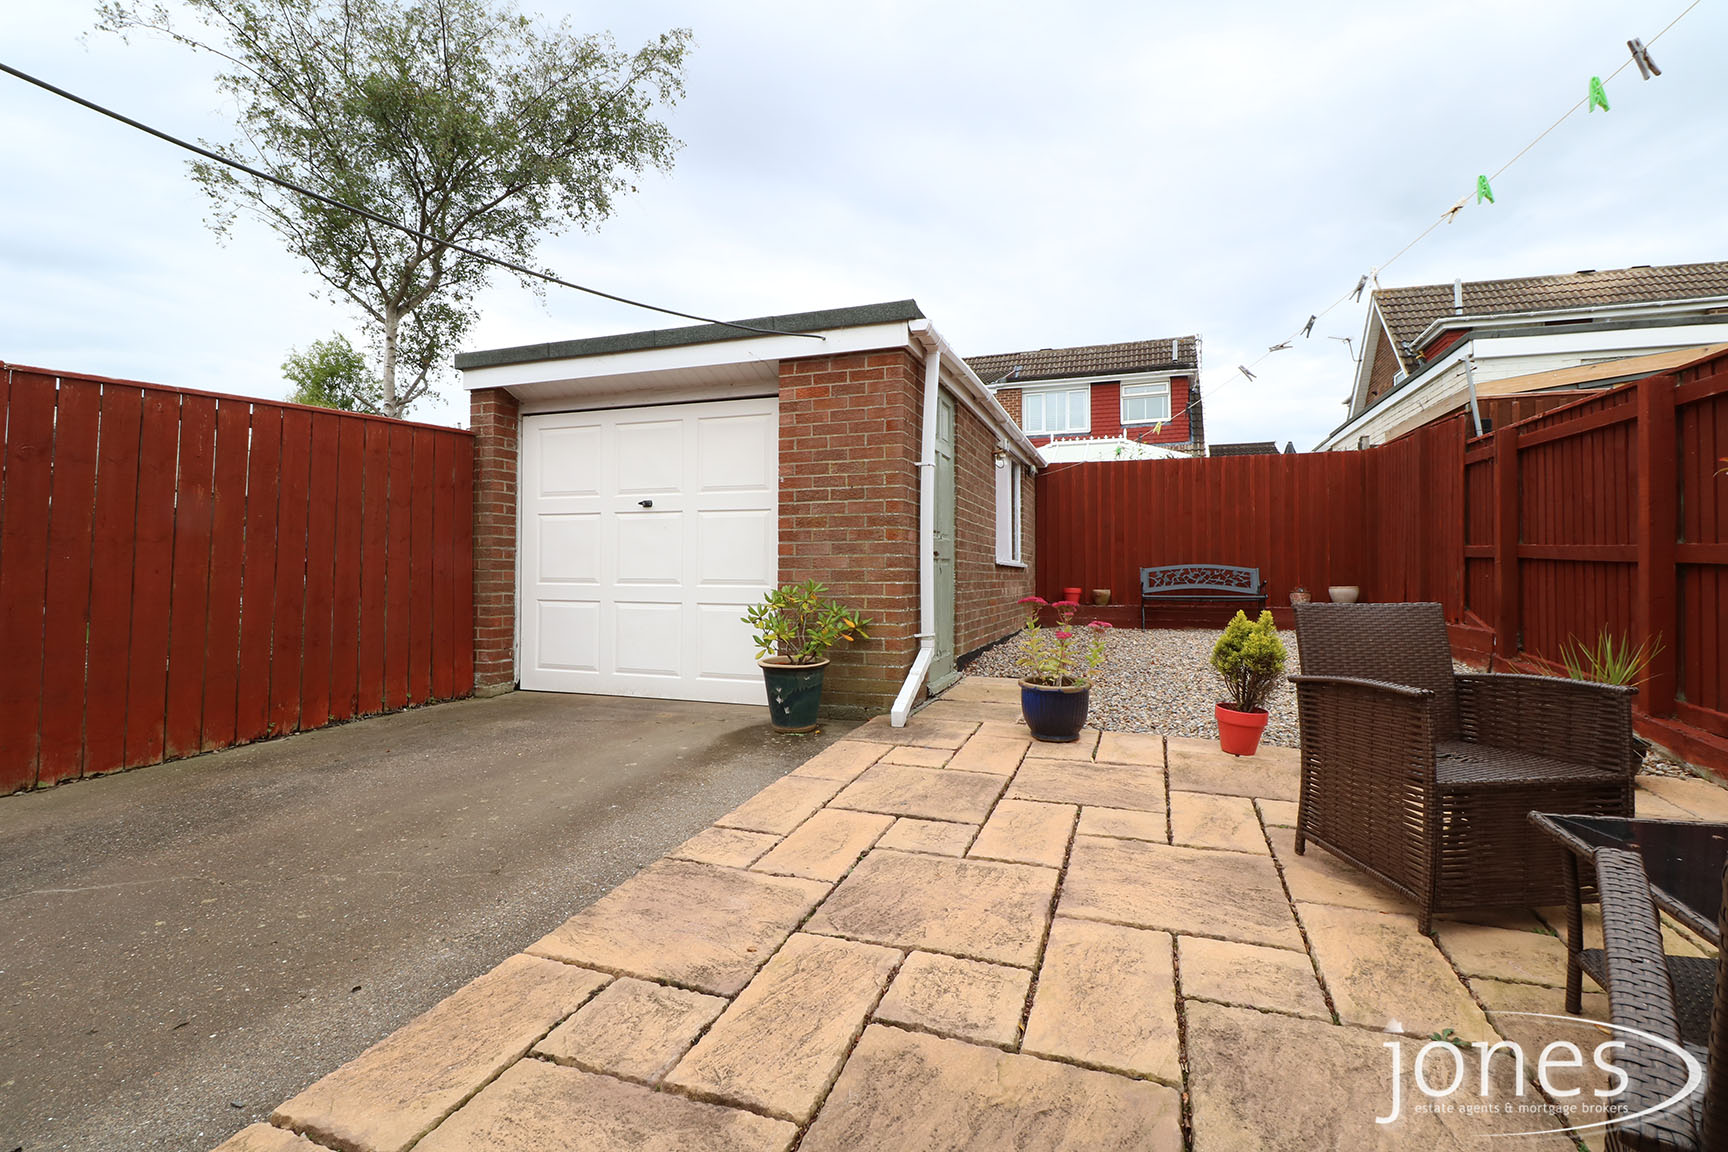 Home for Sale Let - Photo 15 Surbiton Road, Fairfield, Stockton on Tees, TS19 7SA